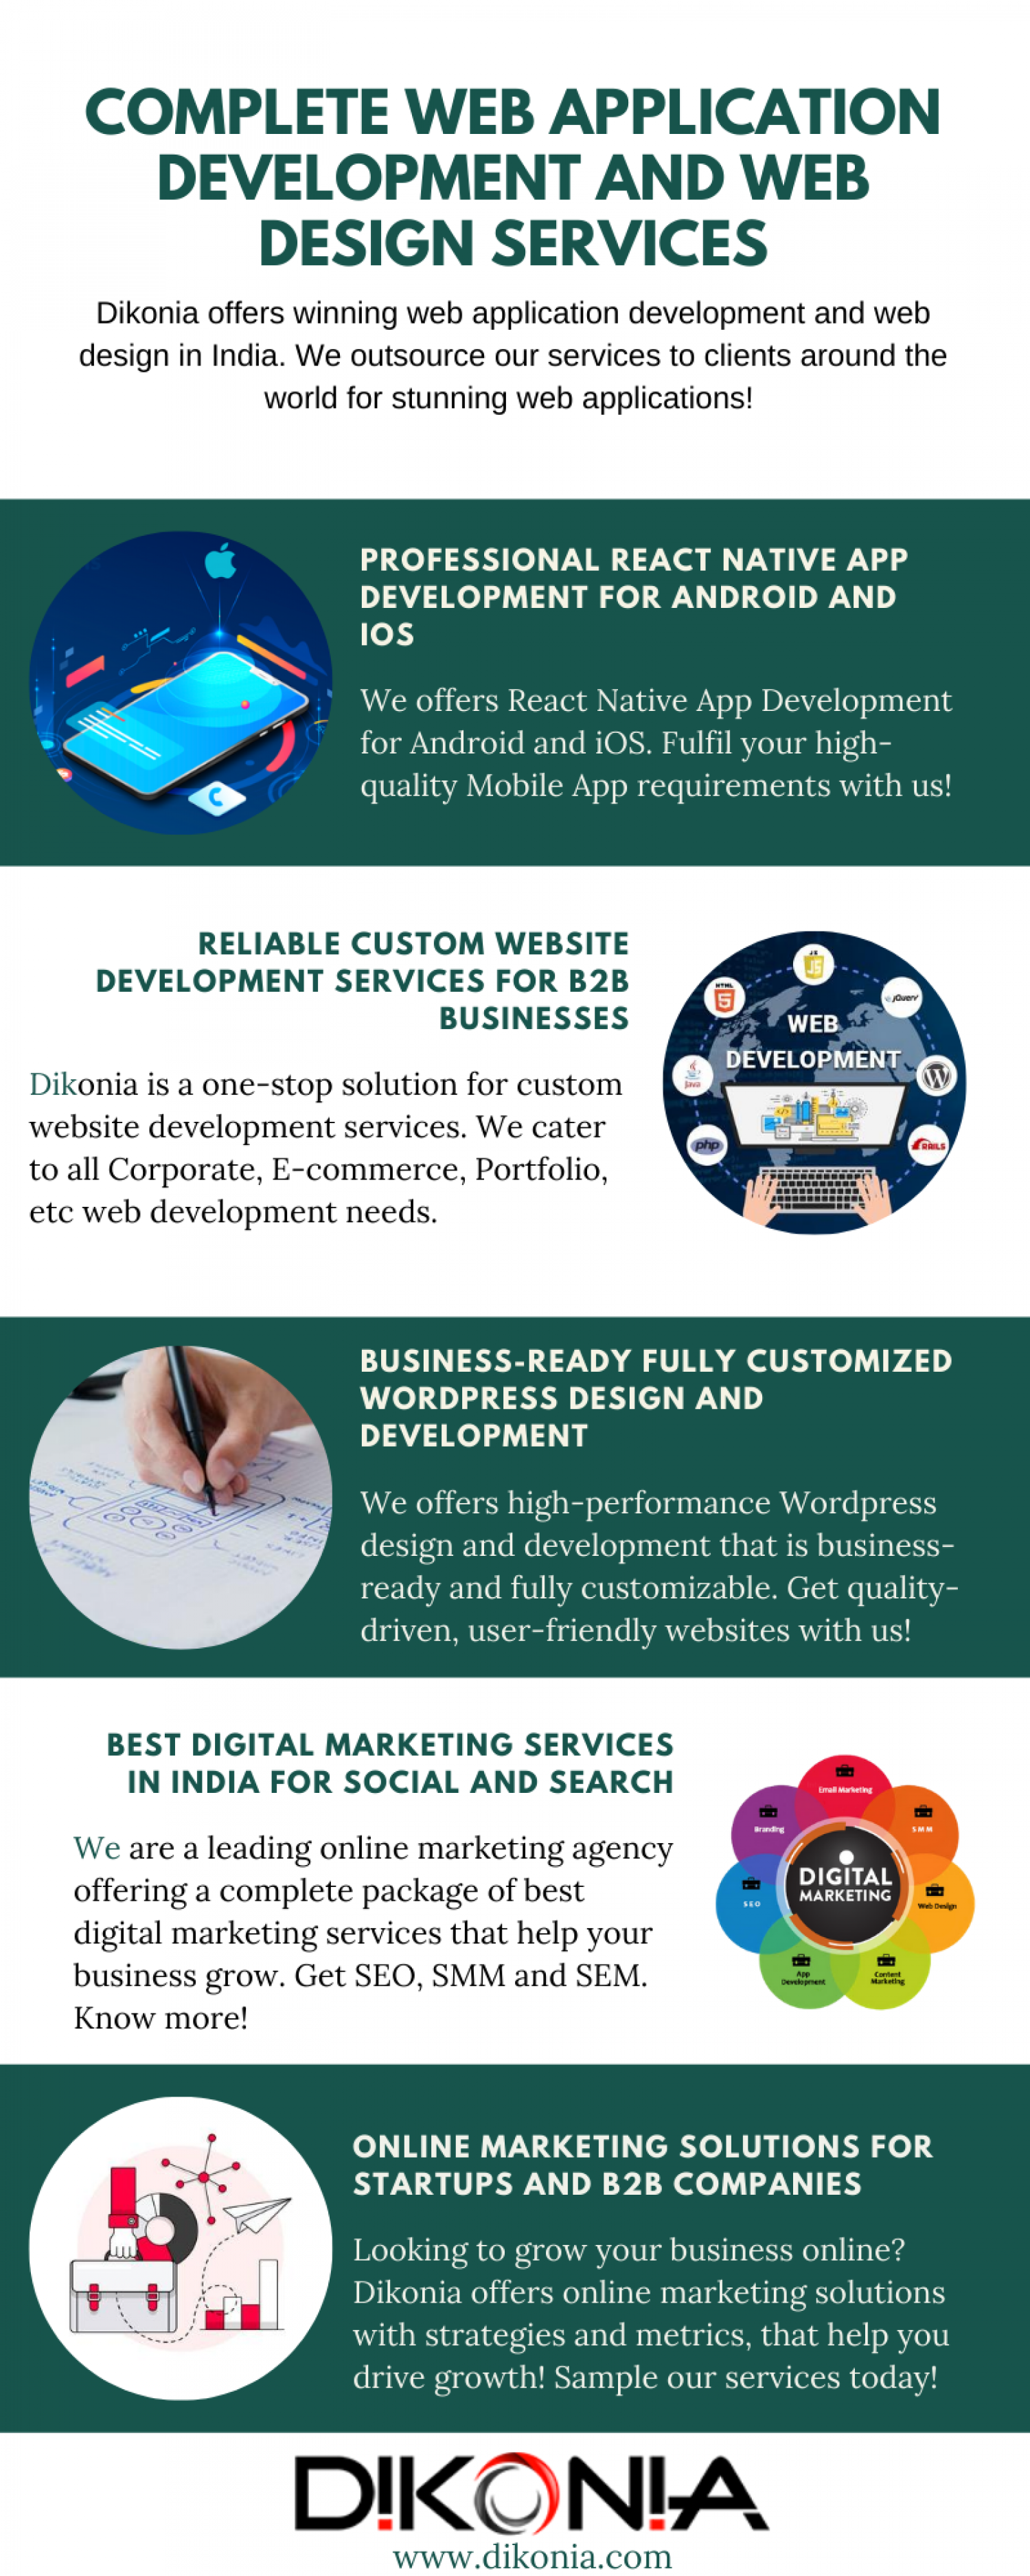 Complete Web Application Development and Web Design Services Infographic